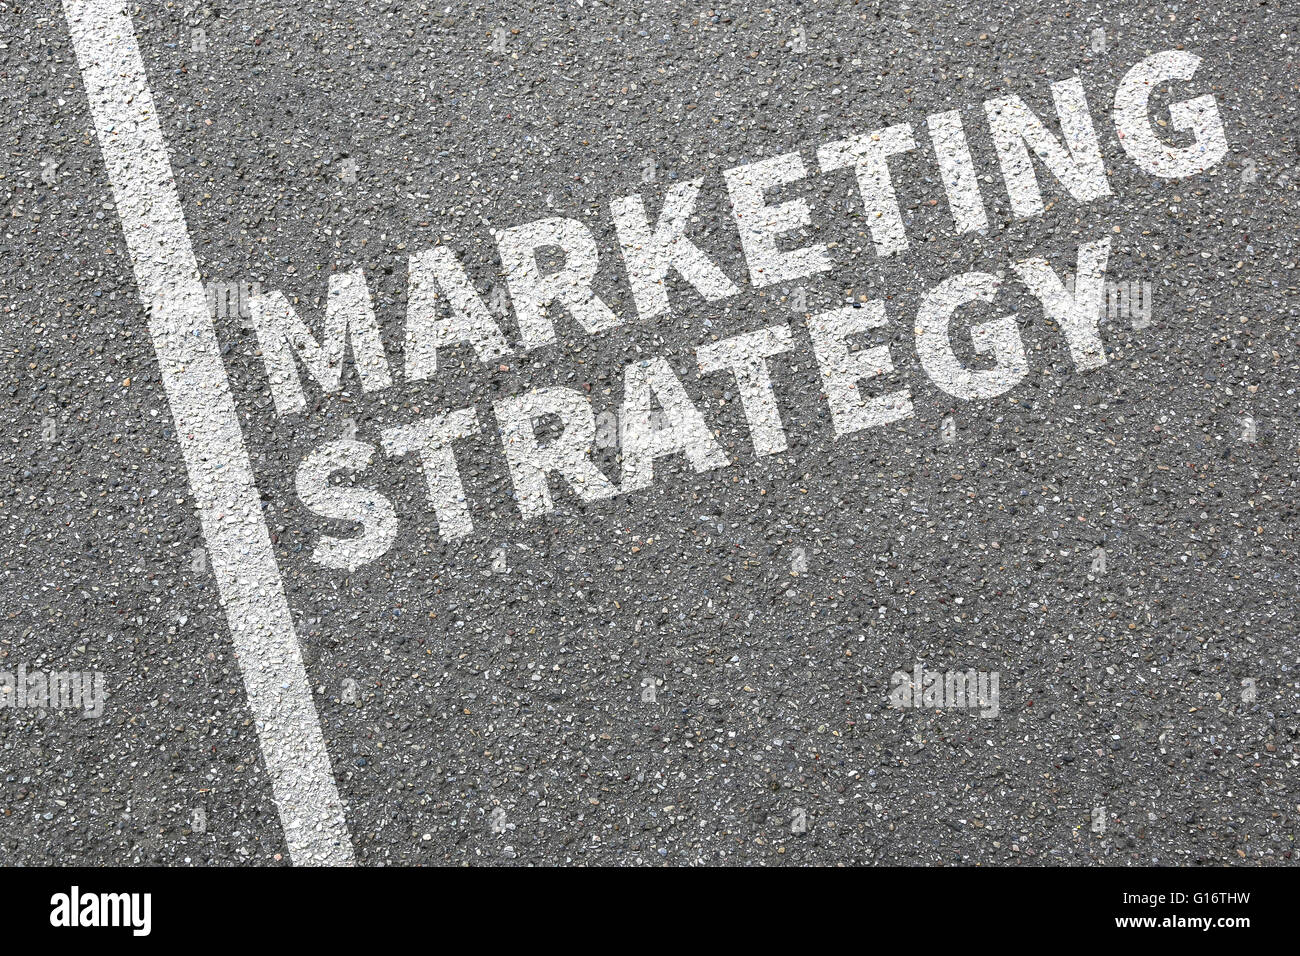 Marketing strategy sale sales advertisement company business concept success - Stock Image